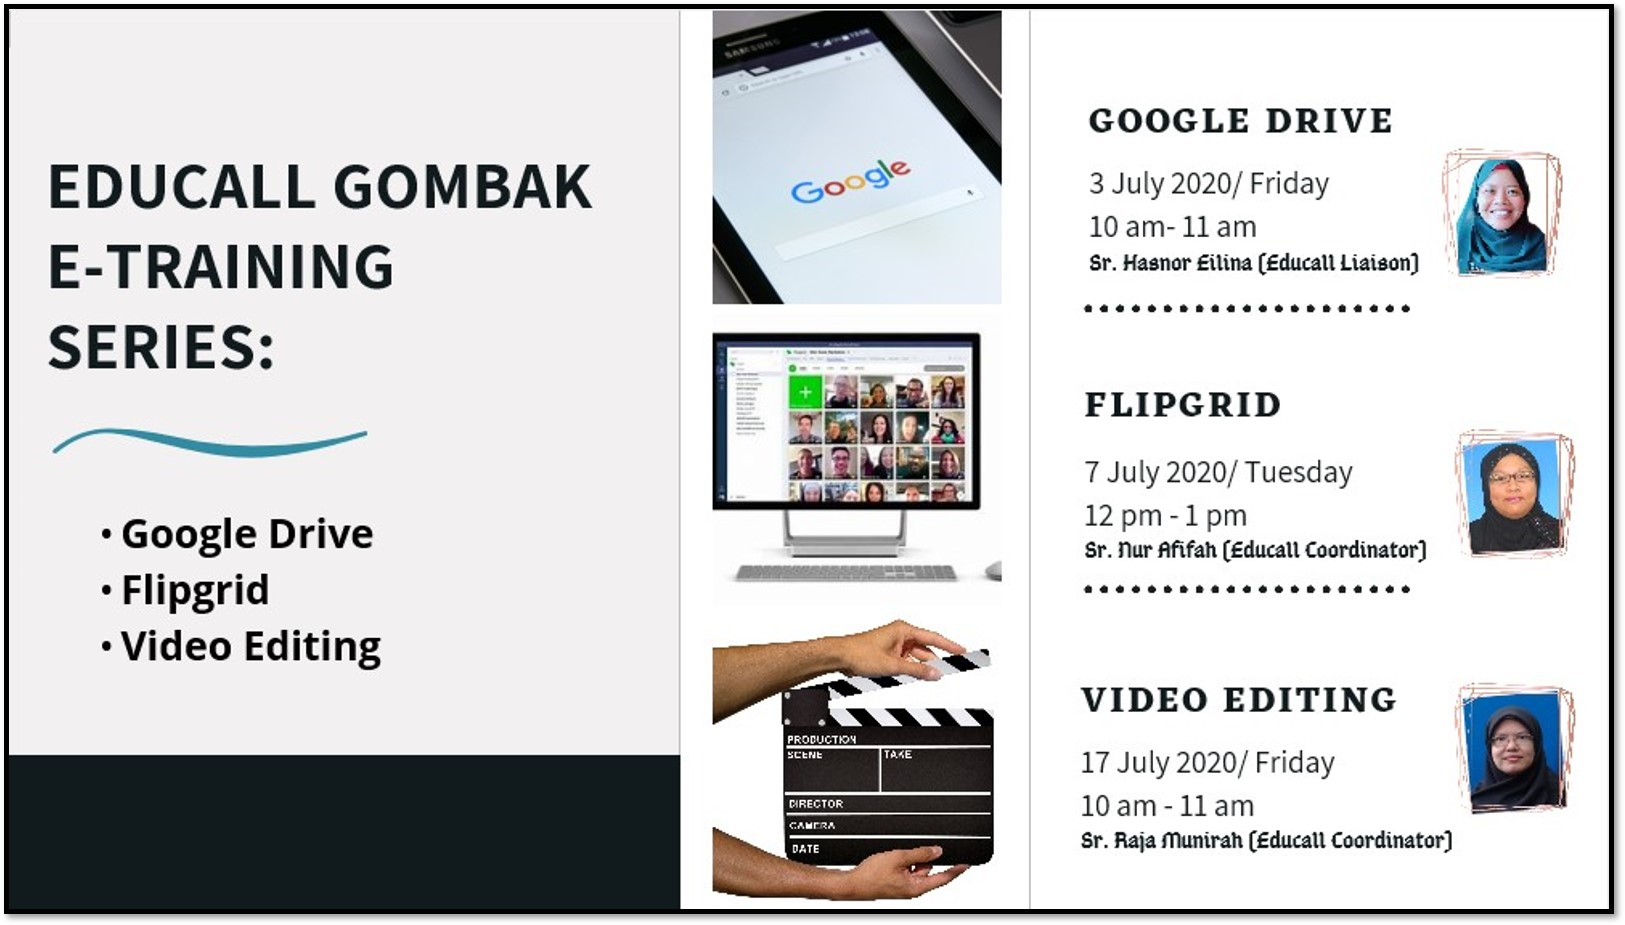 EDUCALL Gombak e-Training Series: Google Drive, Flipgrid & Video Editing